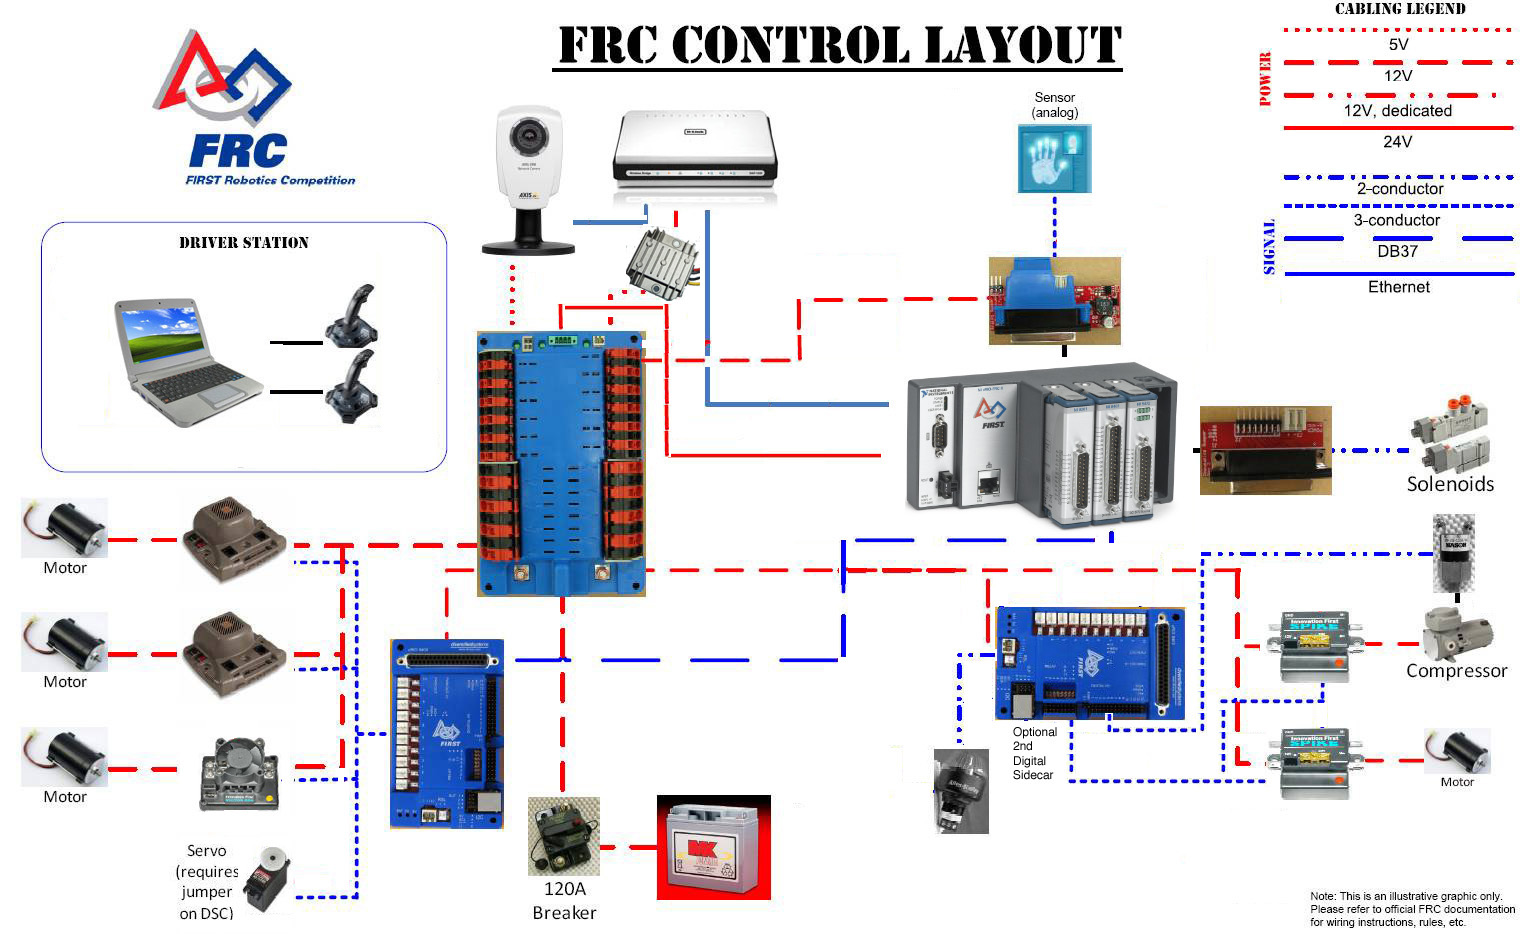 Frc Wiring Diagram from team358.org